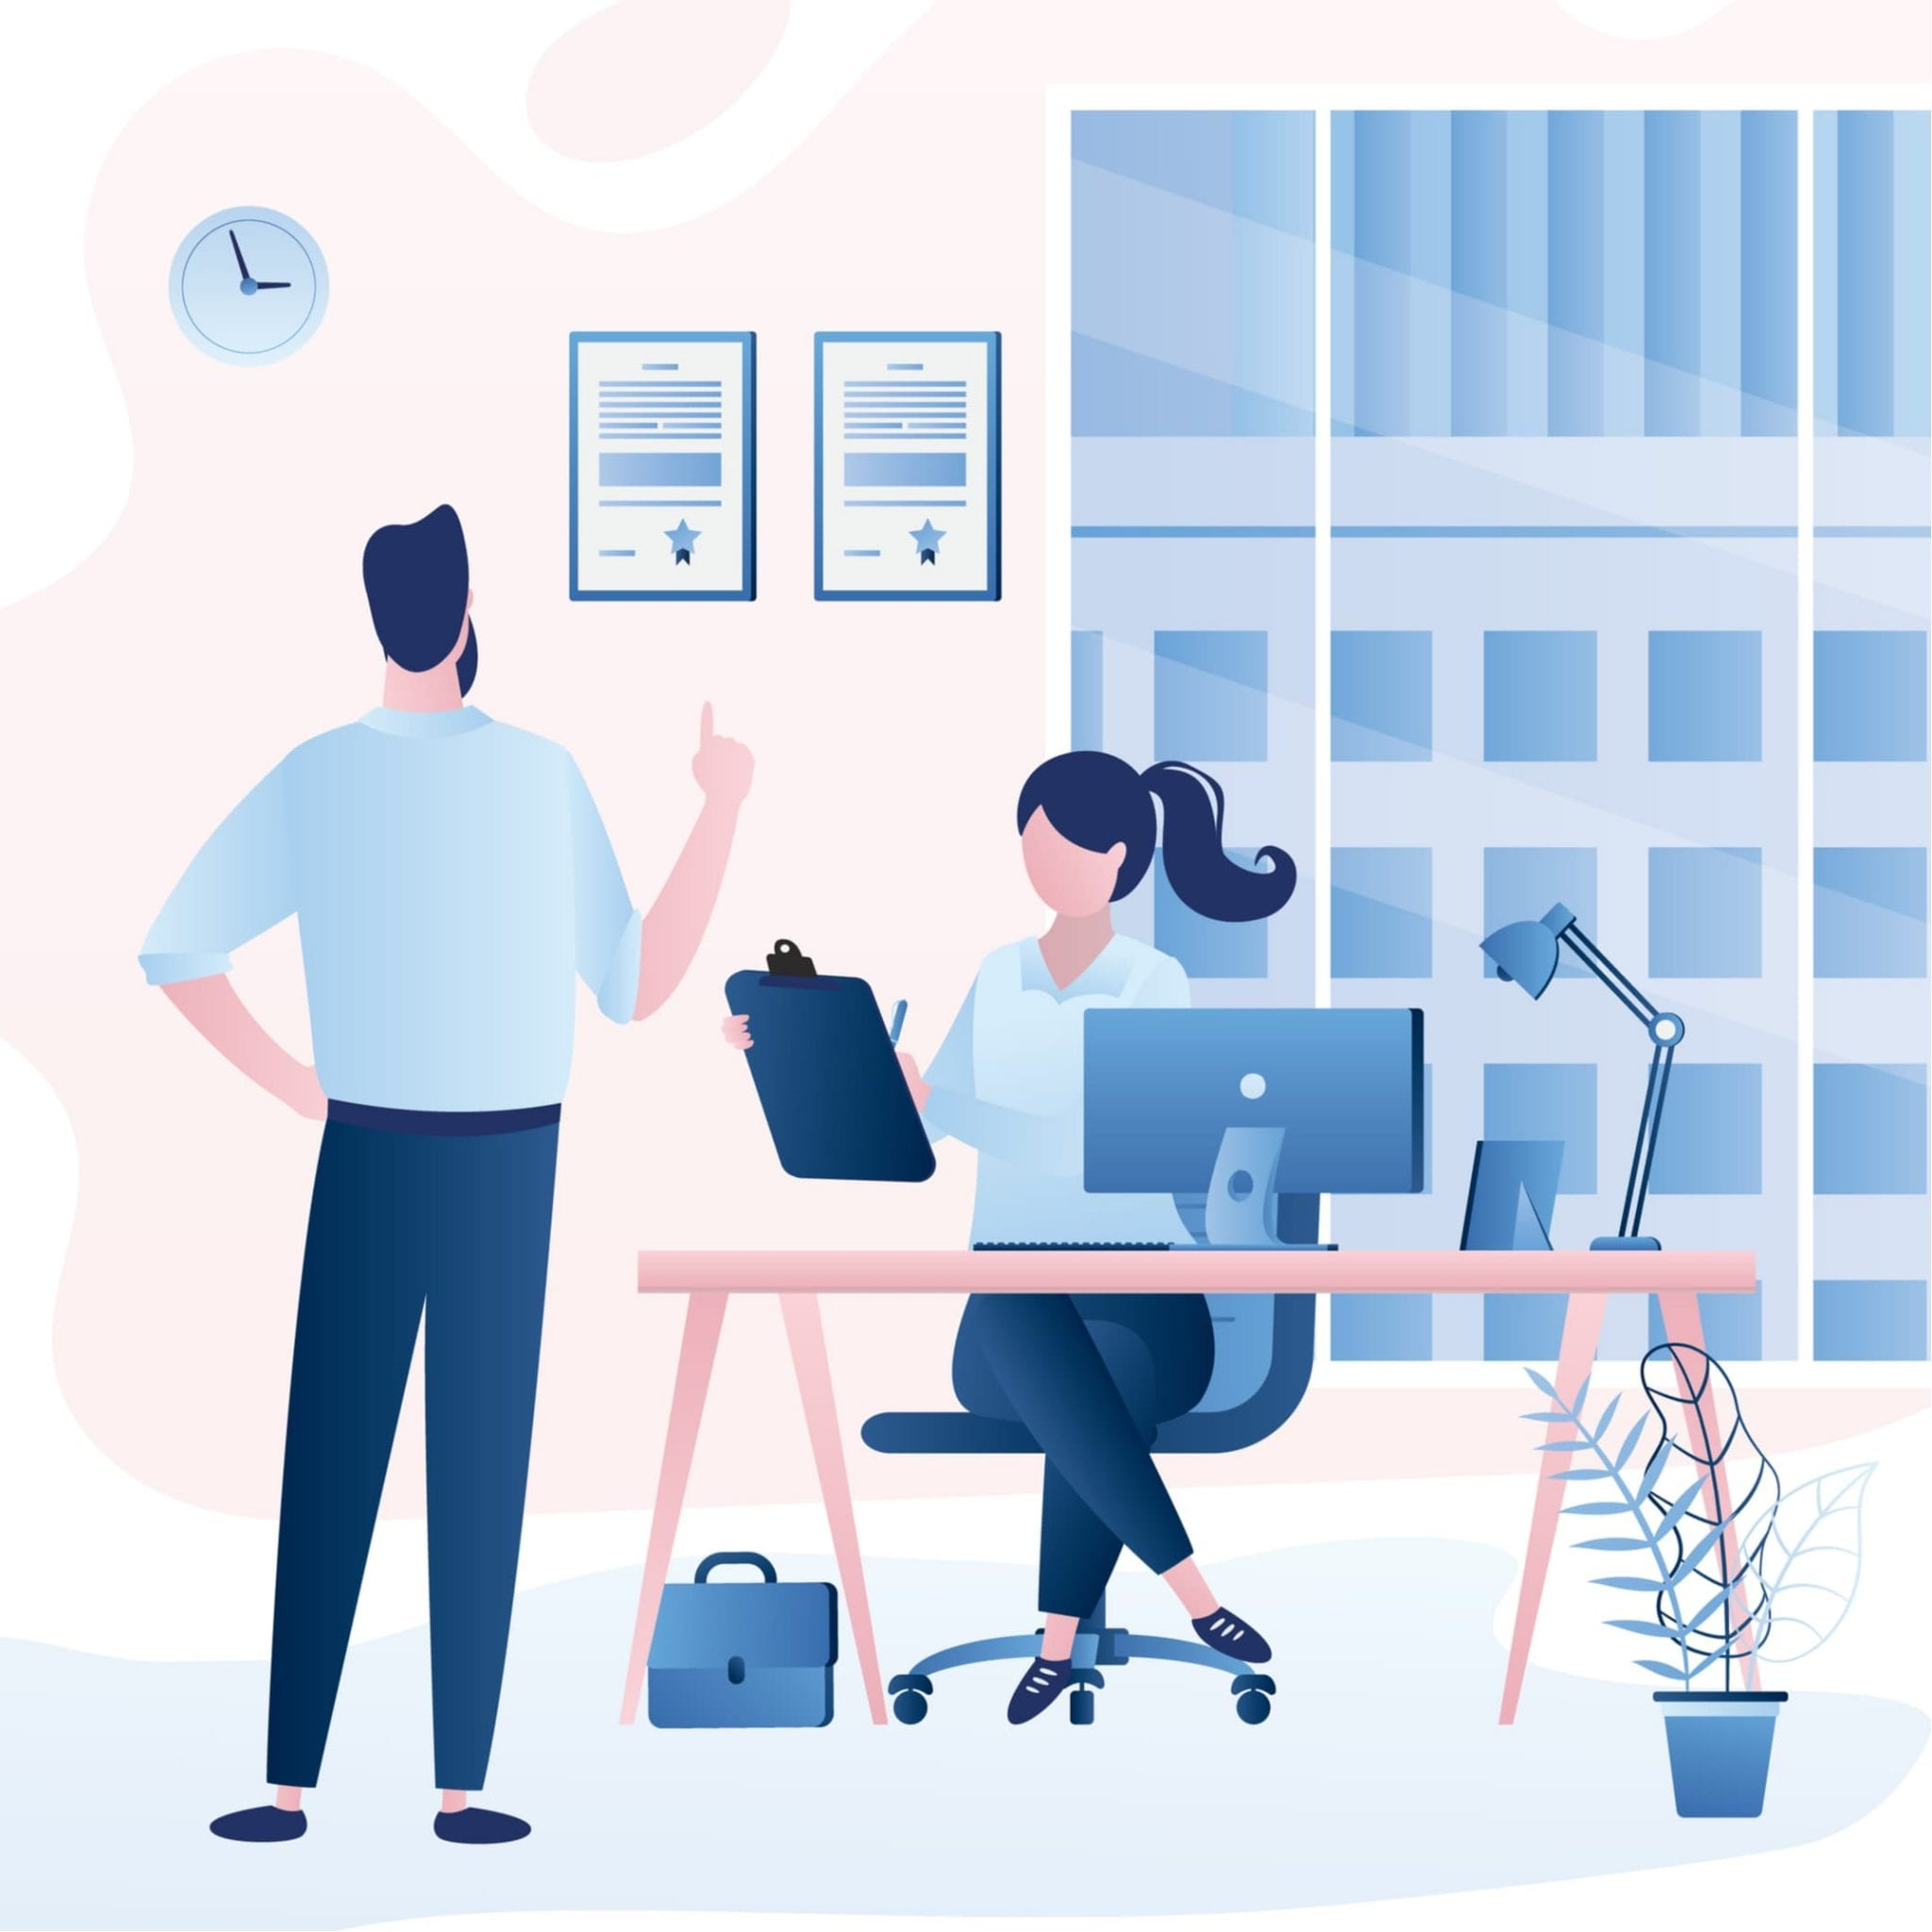 Business People Talking. Colleagues Communicate at Work. Male Boss Tells Employee Instructions. Modern Business Office Room Interior Illustration.